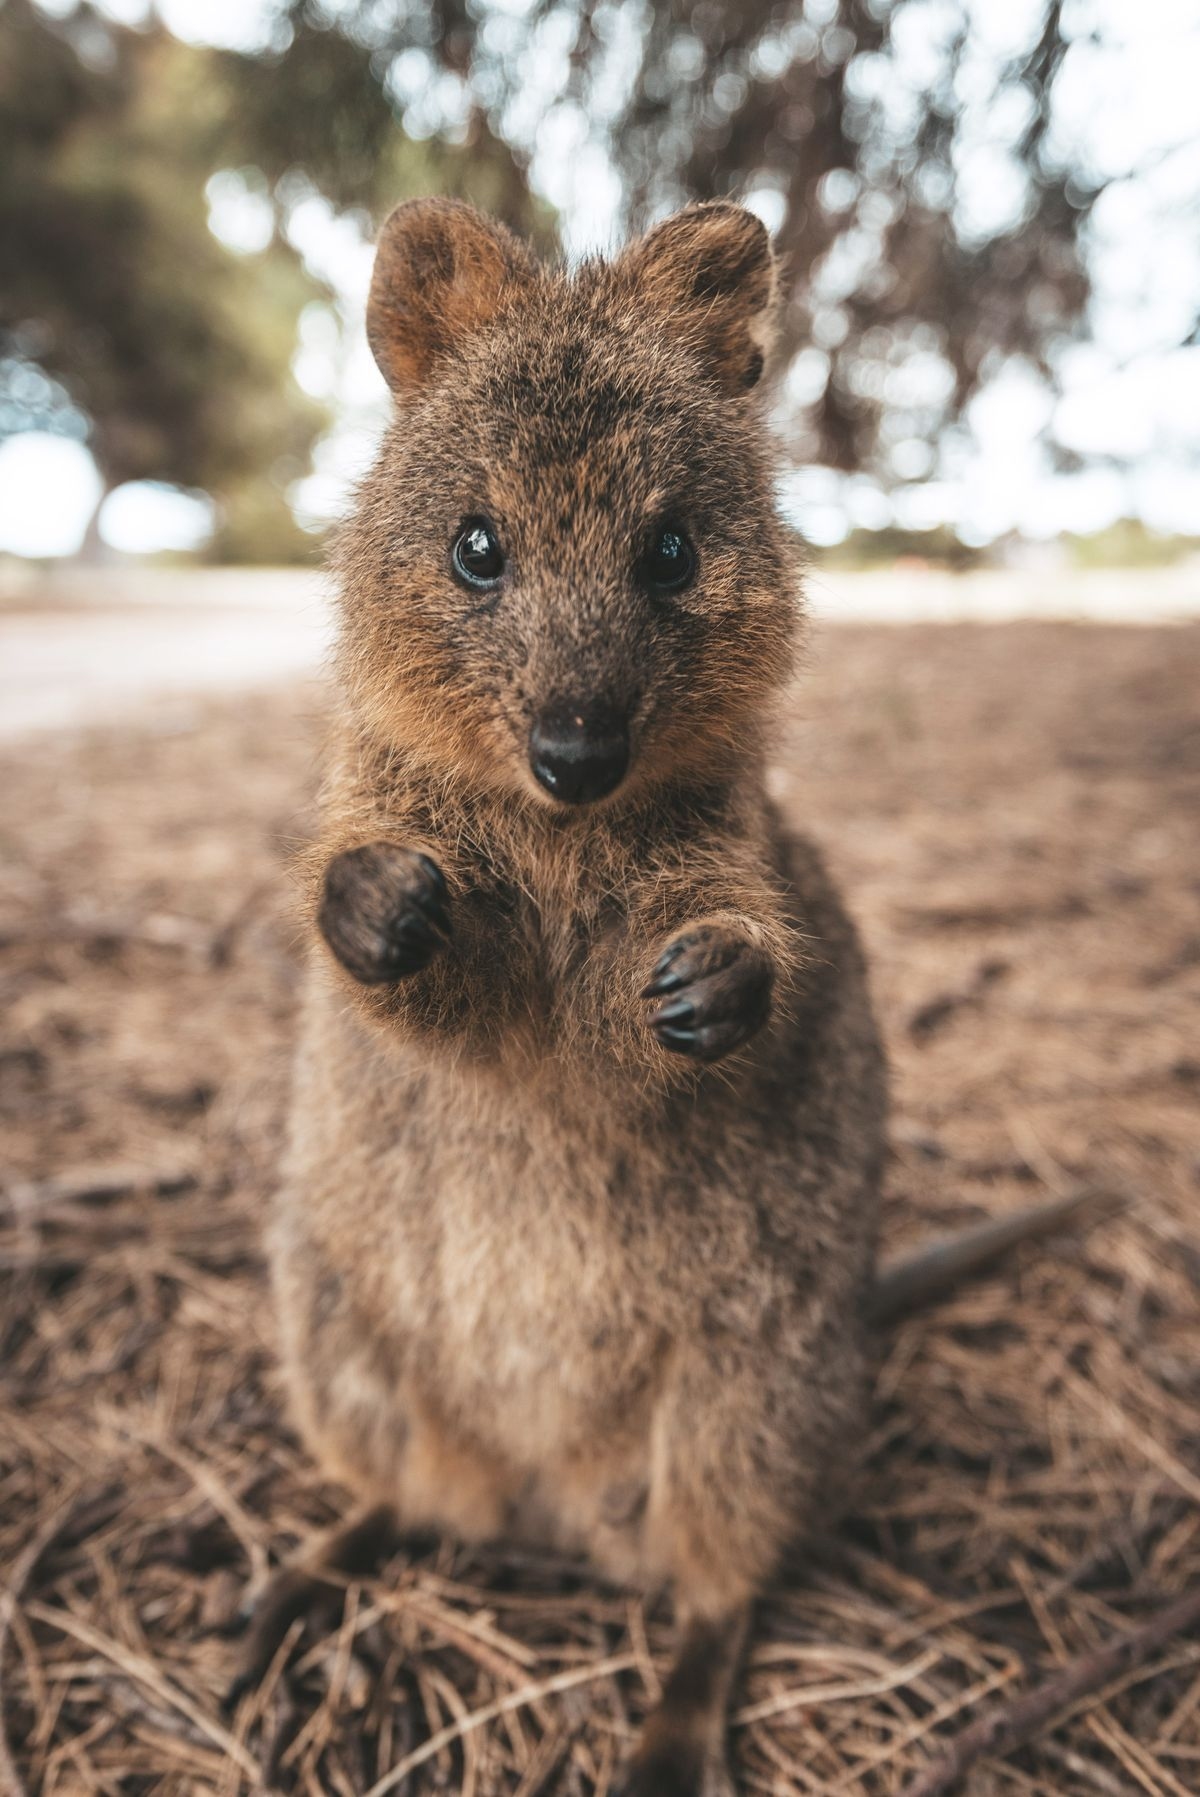 Up close with an adorably aggressive wild quokka on